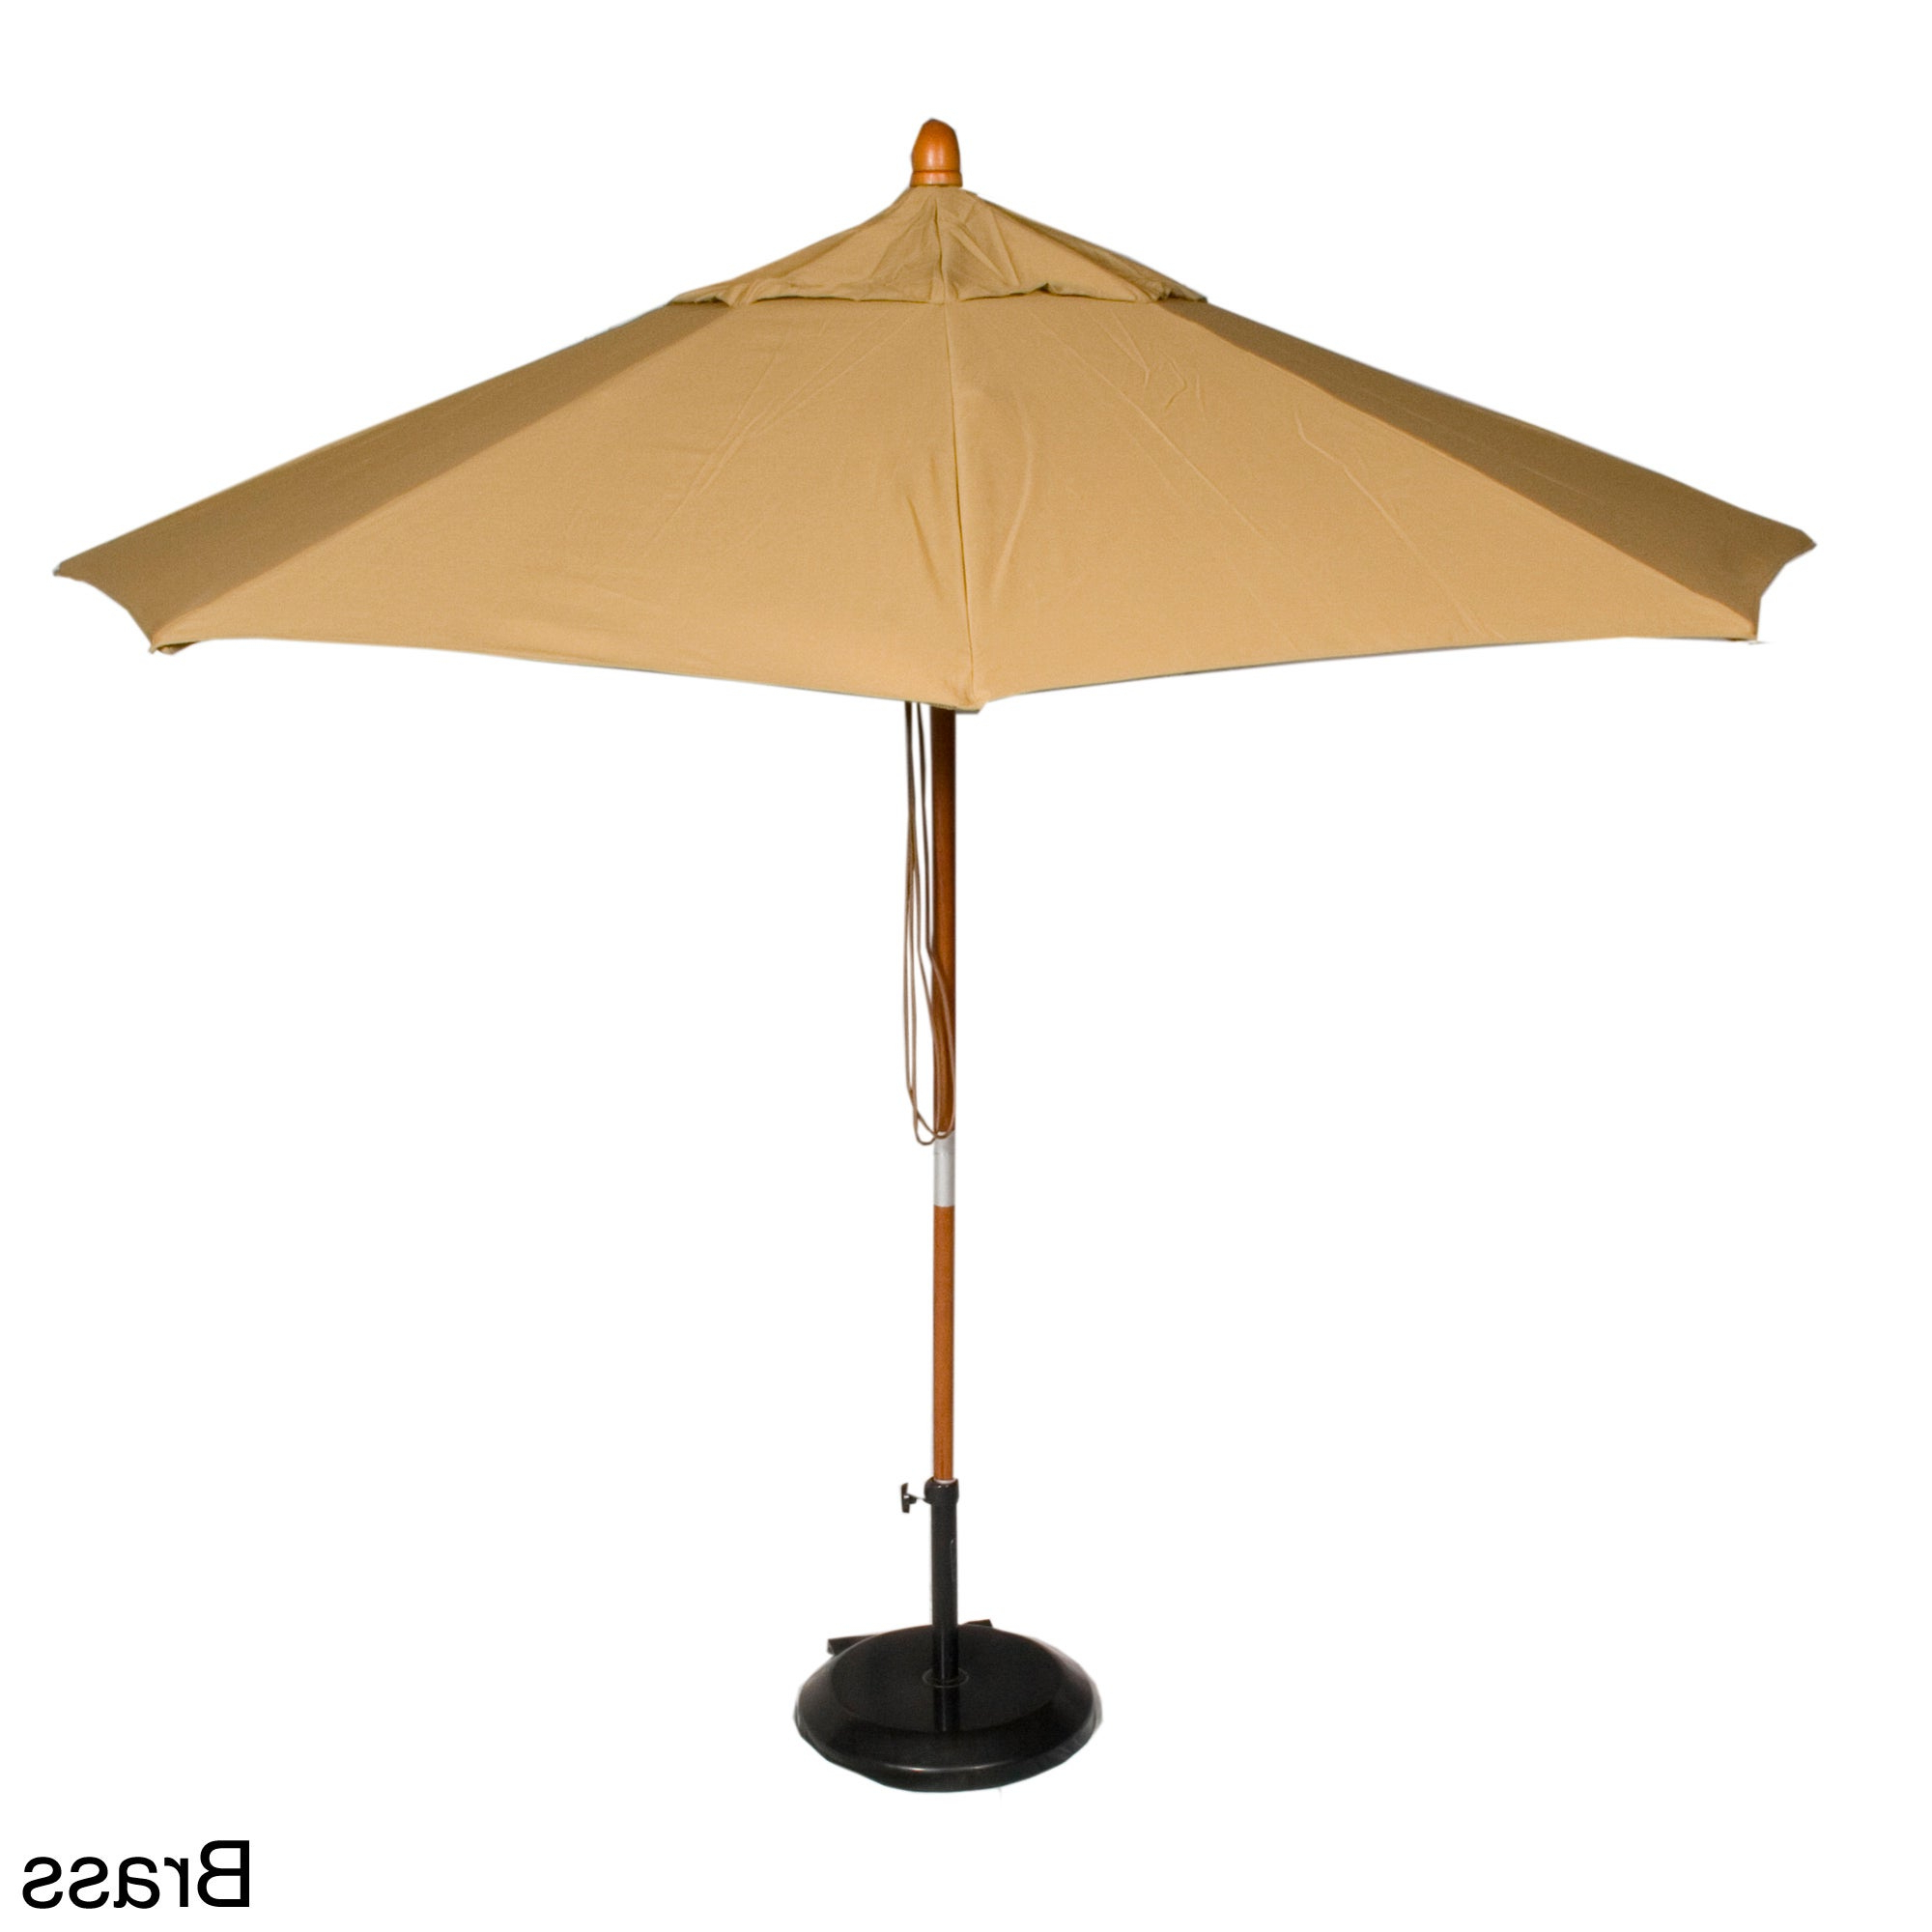 Famous Phat Tommy Cantilever Umbrellas With Regard To Phat Tommy 9 Foot Sunbrella Fabric Marenti Wood Market Patio Umbrella (View 2 of 20)